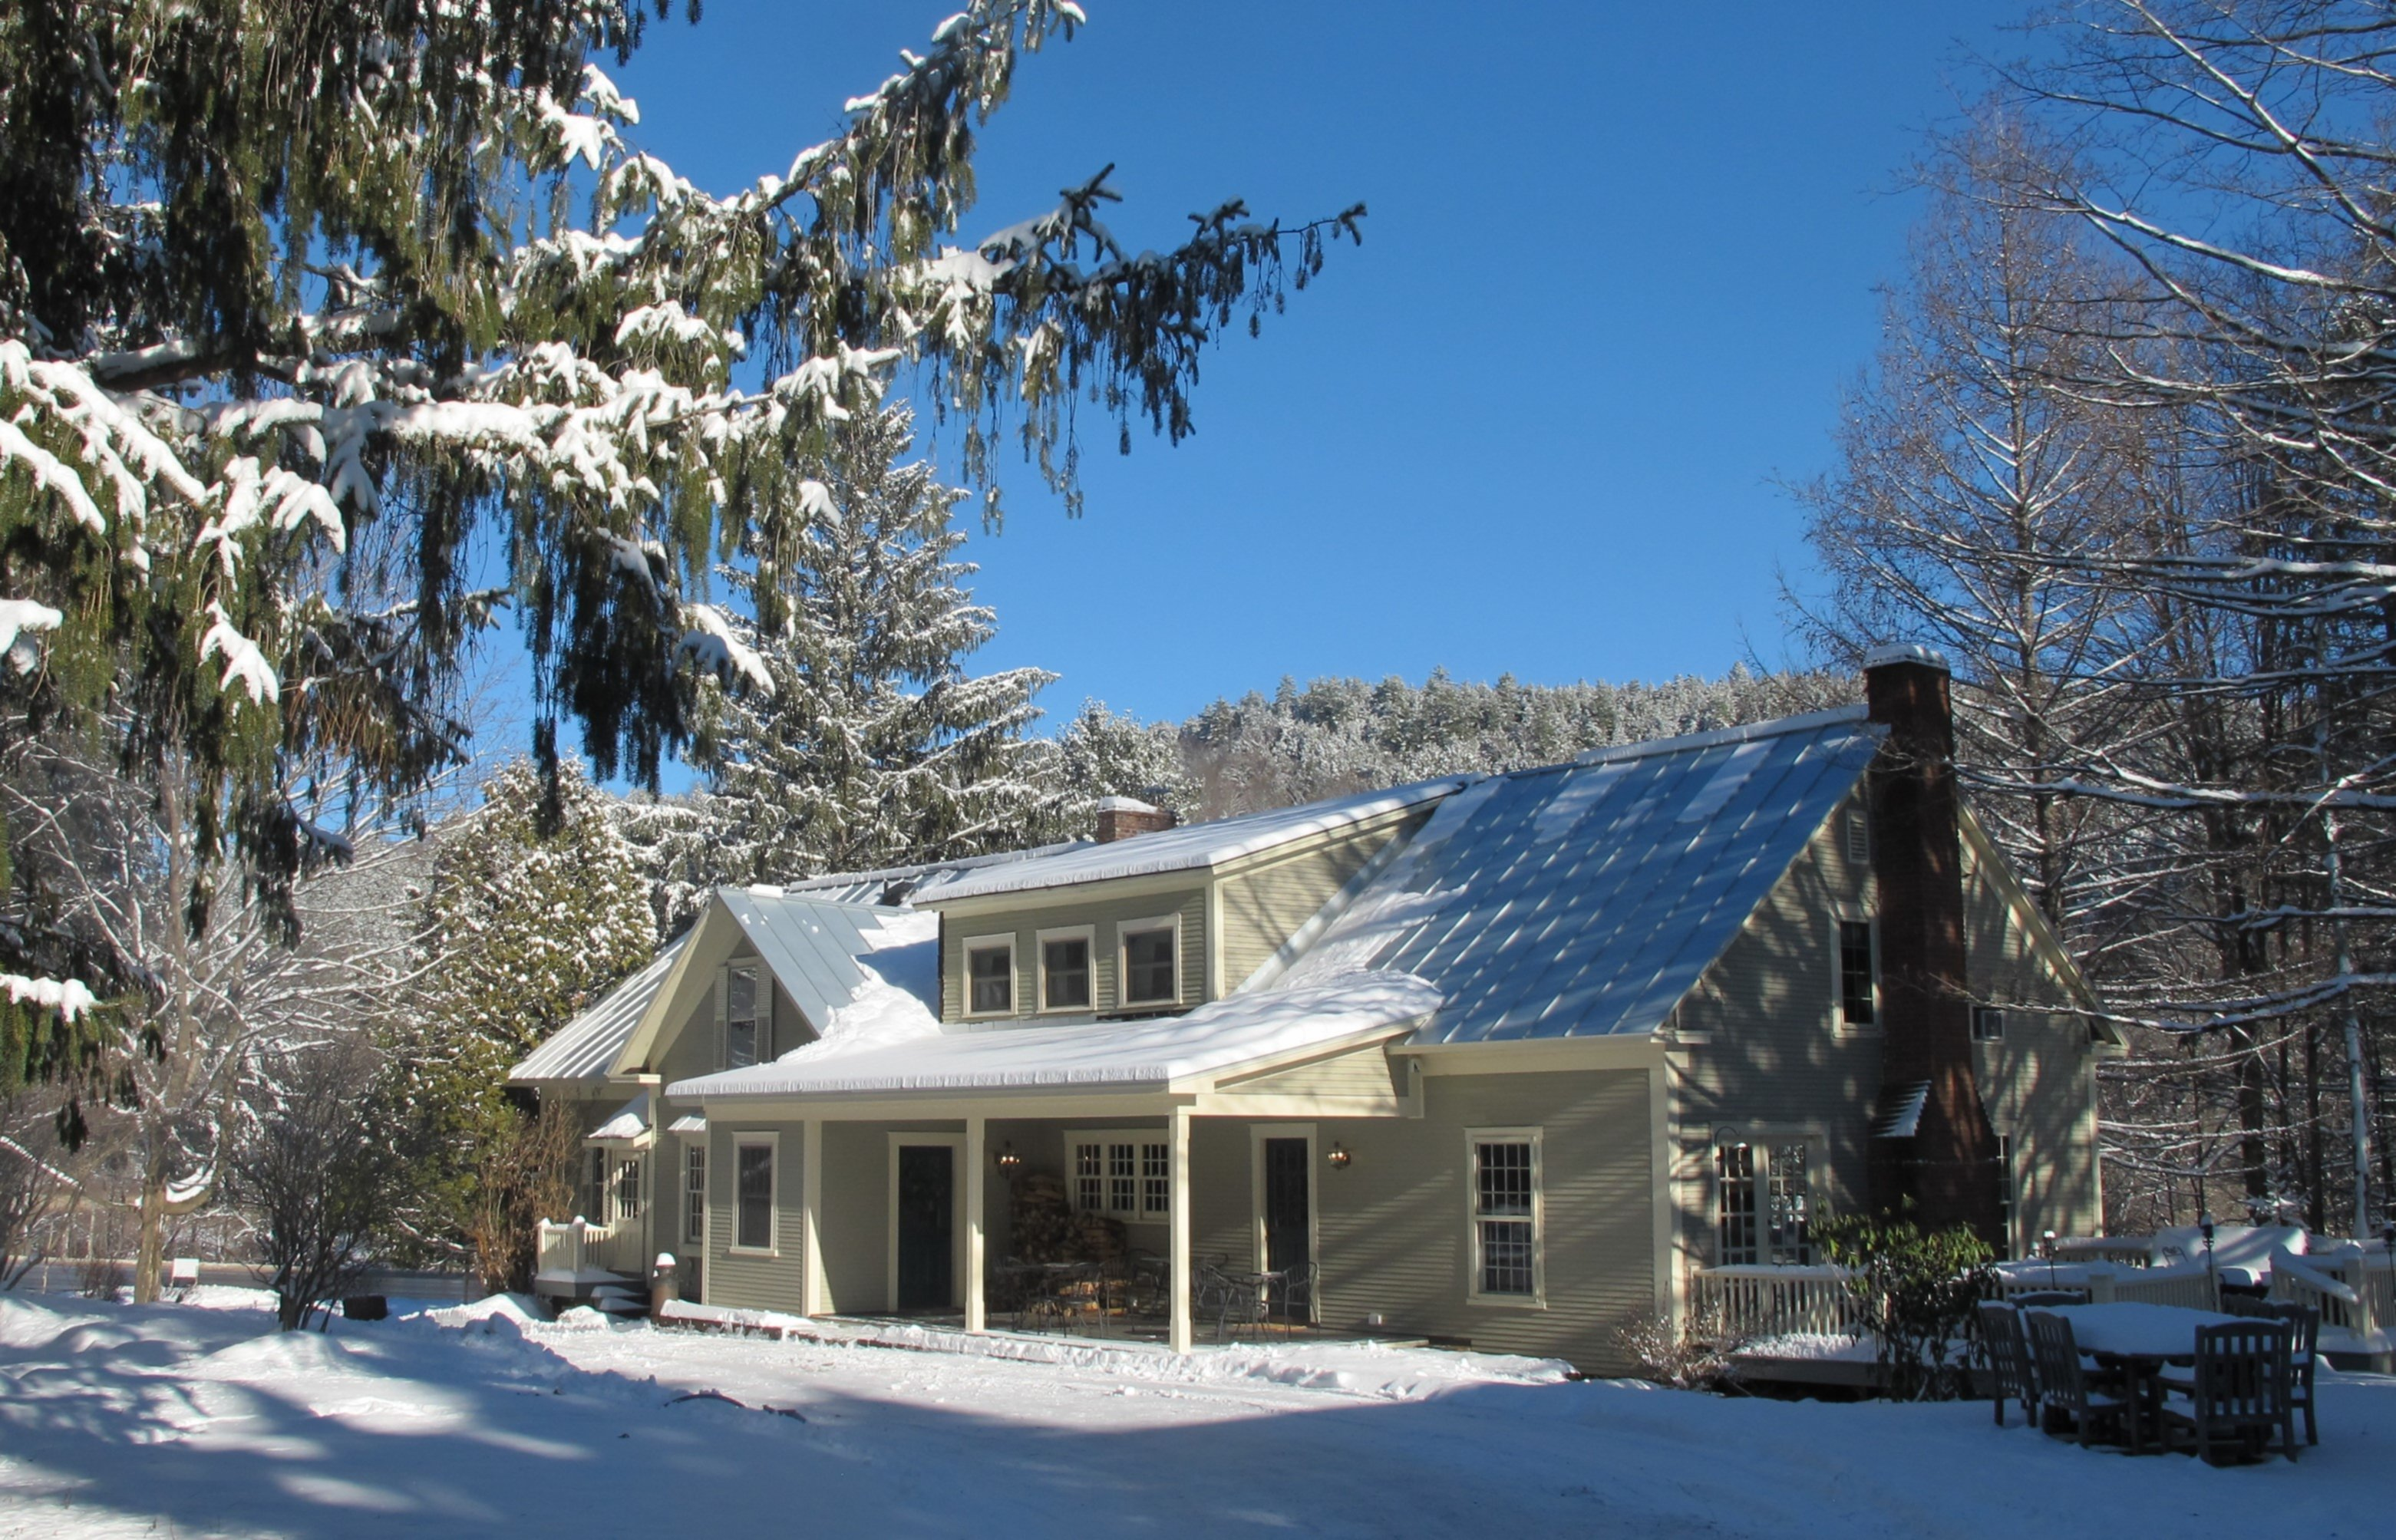 A house covered in snow at Featherbed Inn.